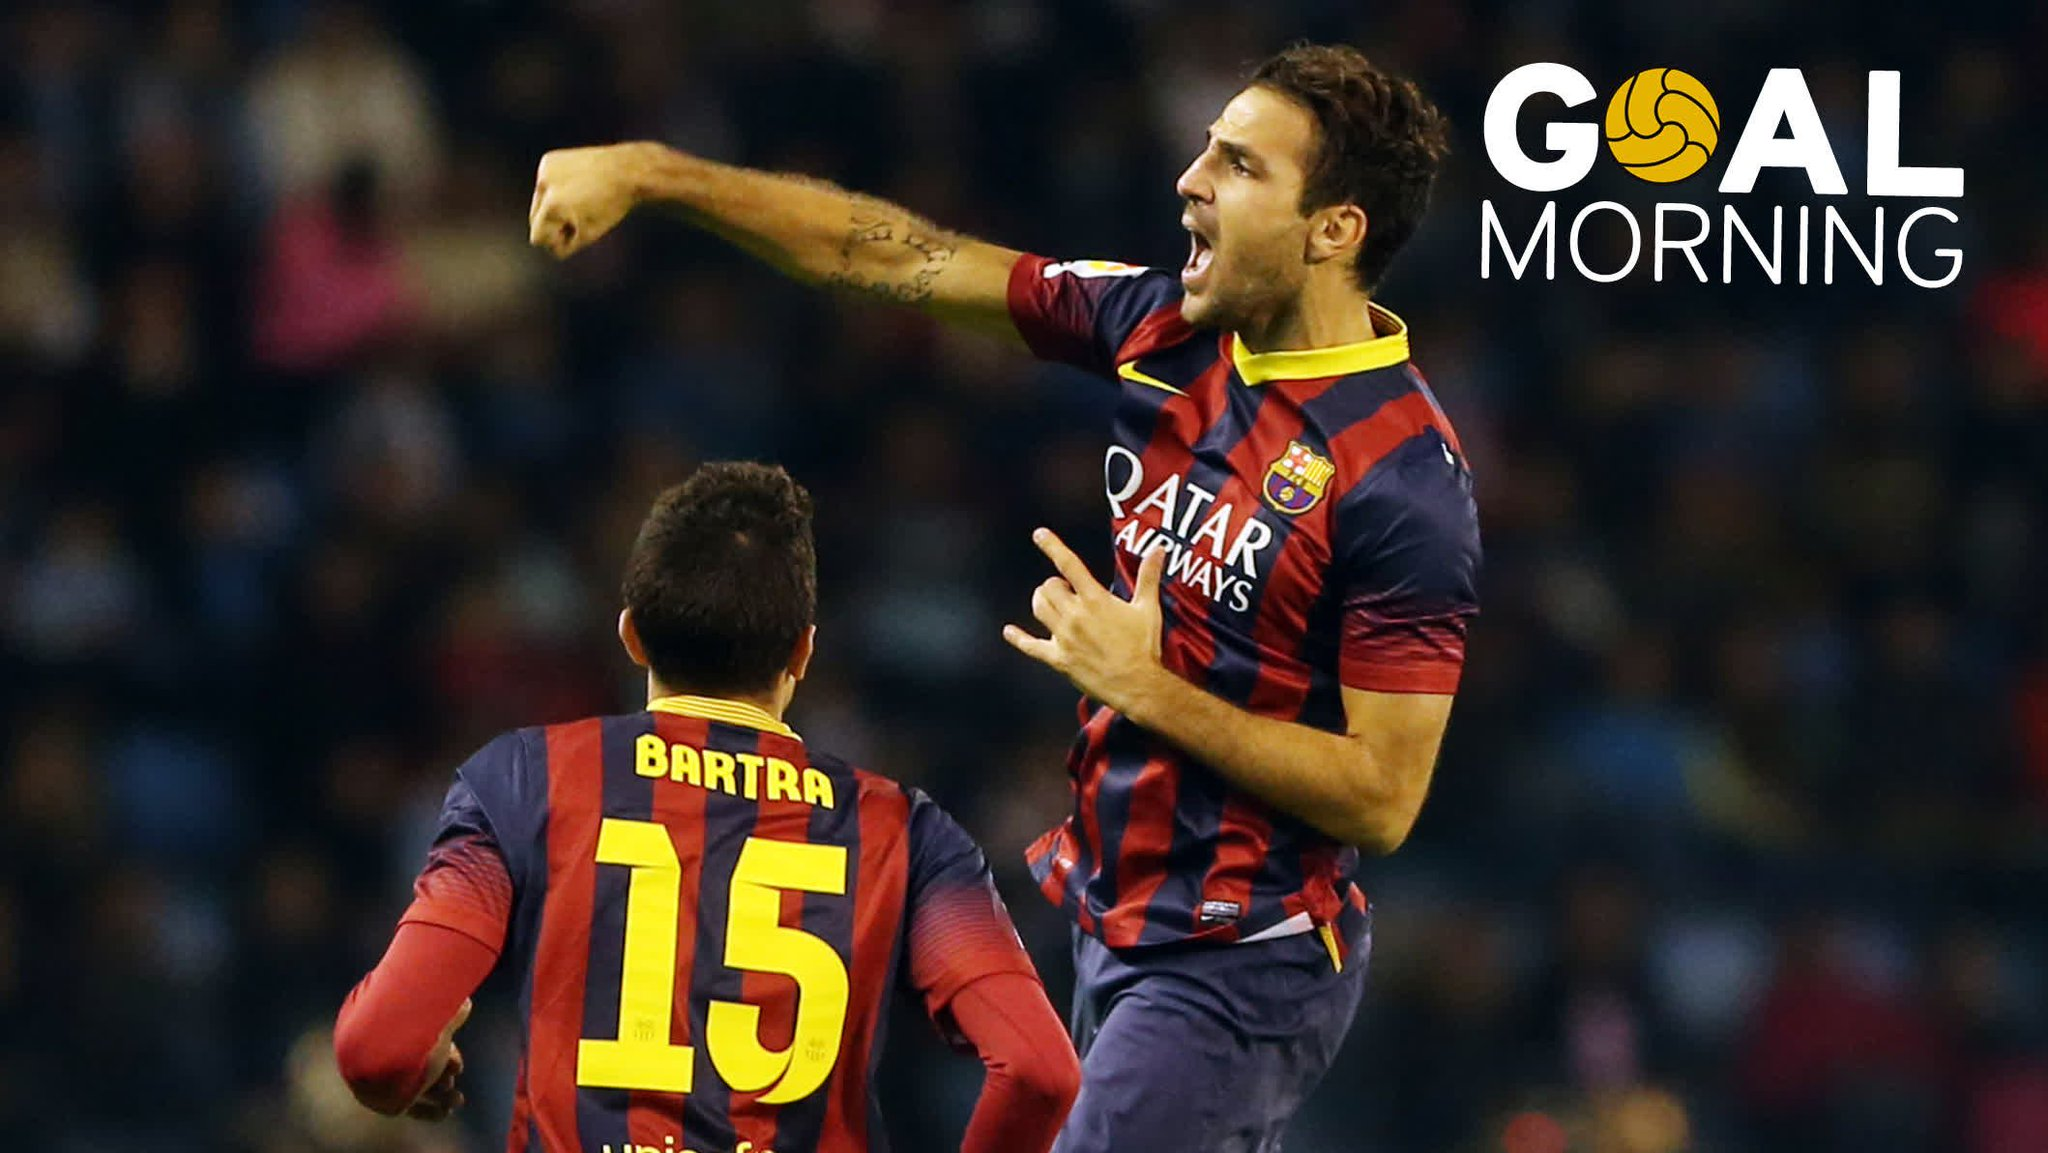 G⚽️AL MORNING!!! �� @cesc4official �� �� 2013 https://t.co/GwUqfiXh2d